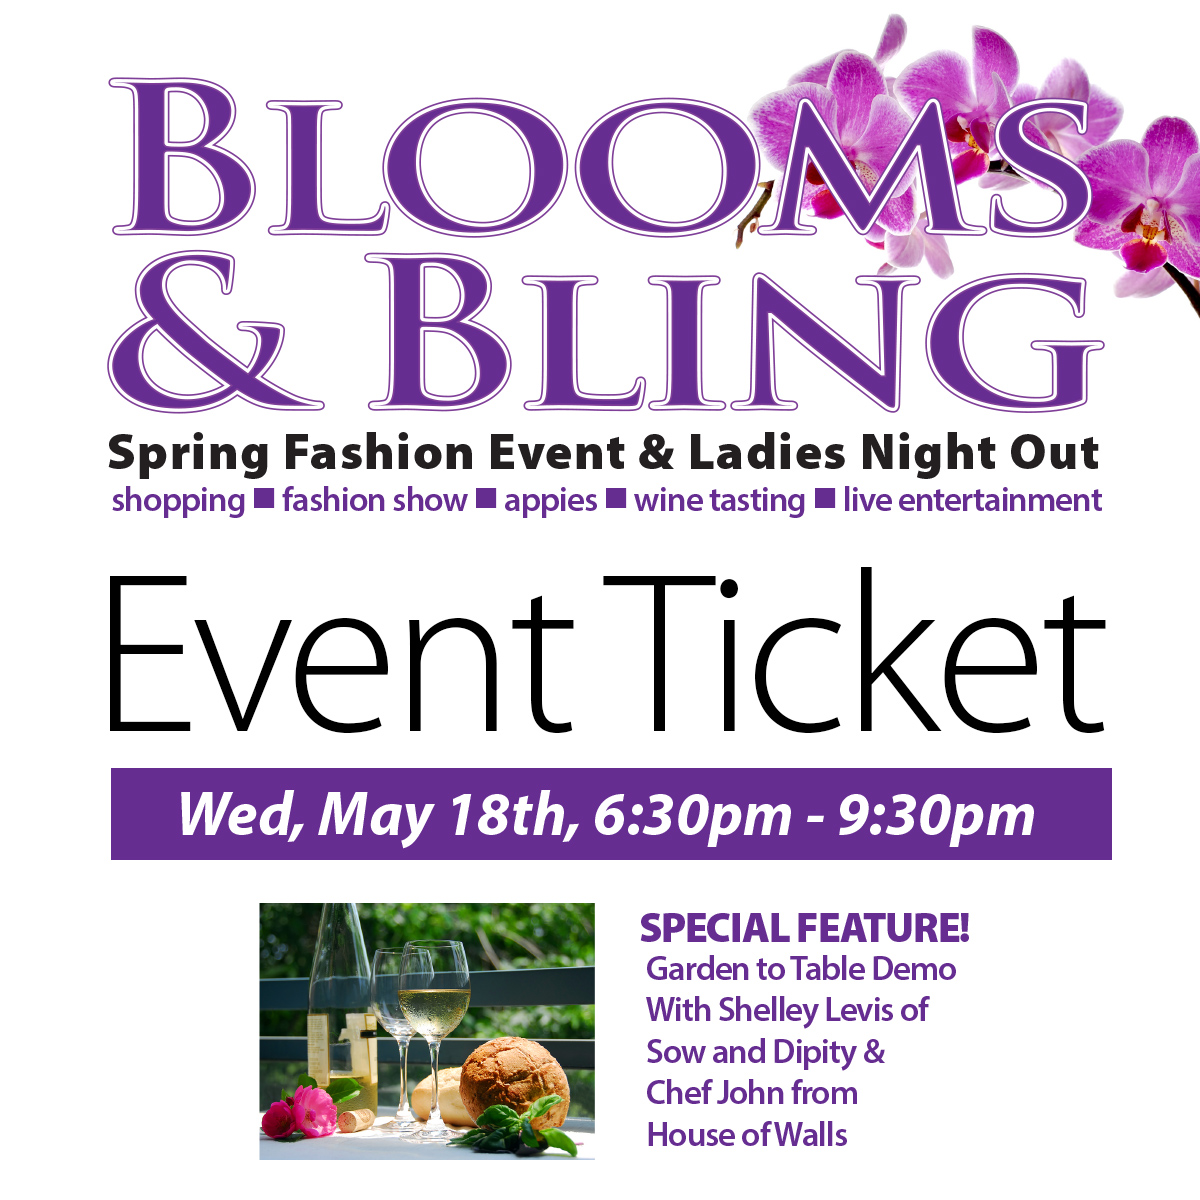 Blooms & Bling 2016 Ticket